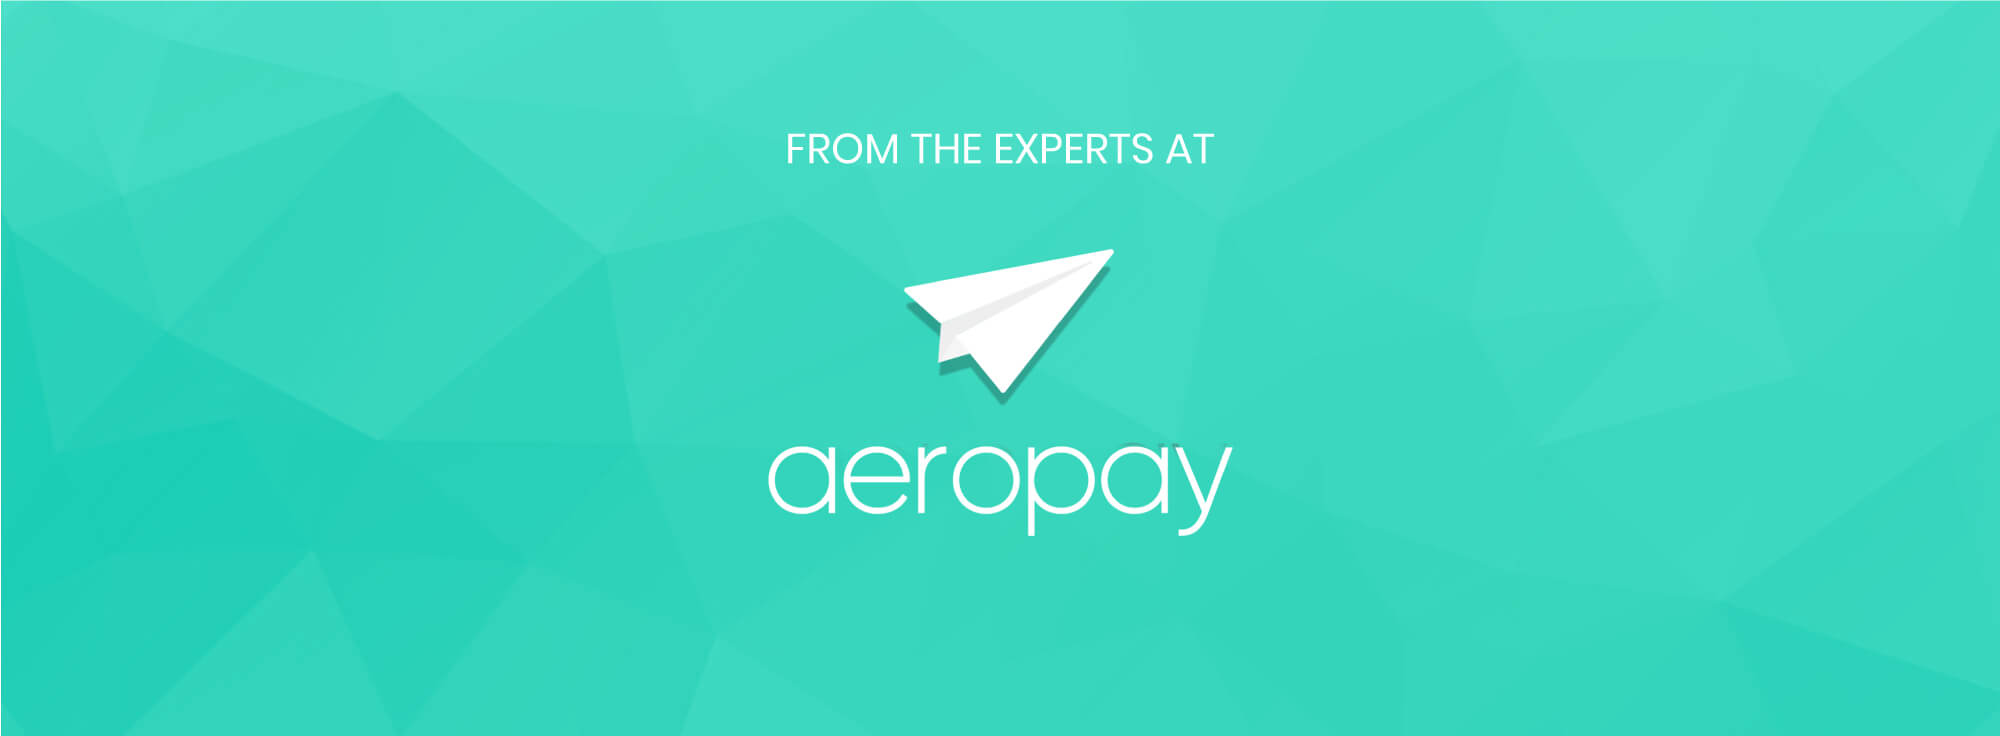 from the experts at aeropay image